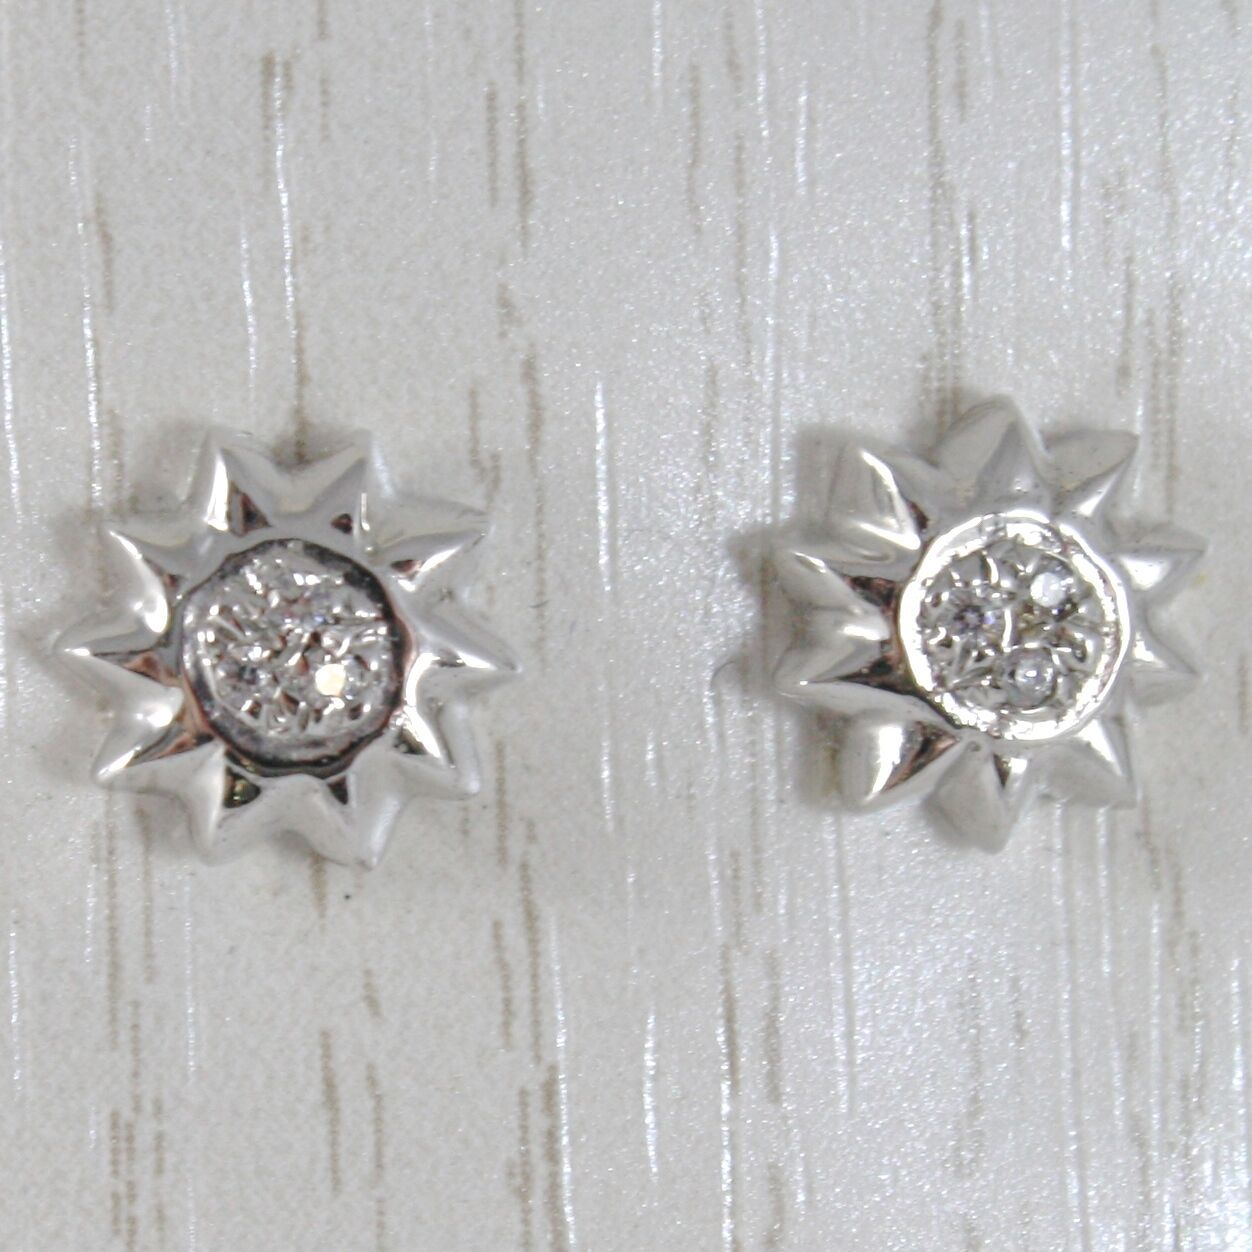 WHITE GOLD EARRINGS 750 18K LOBE, WITH SUN AND ZIRCON, WIDE 9 MM